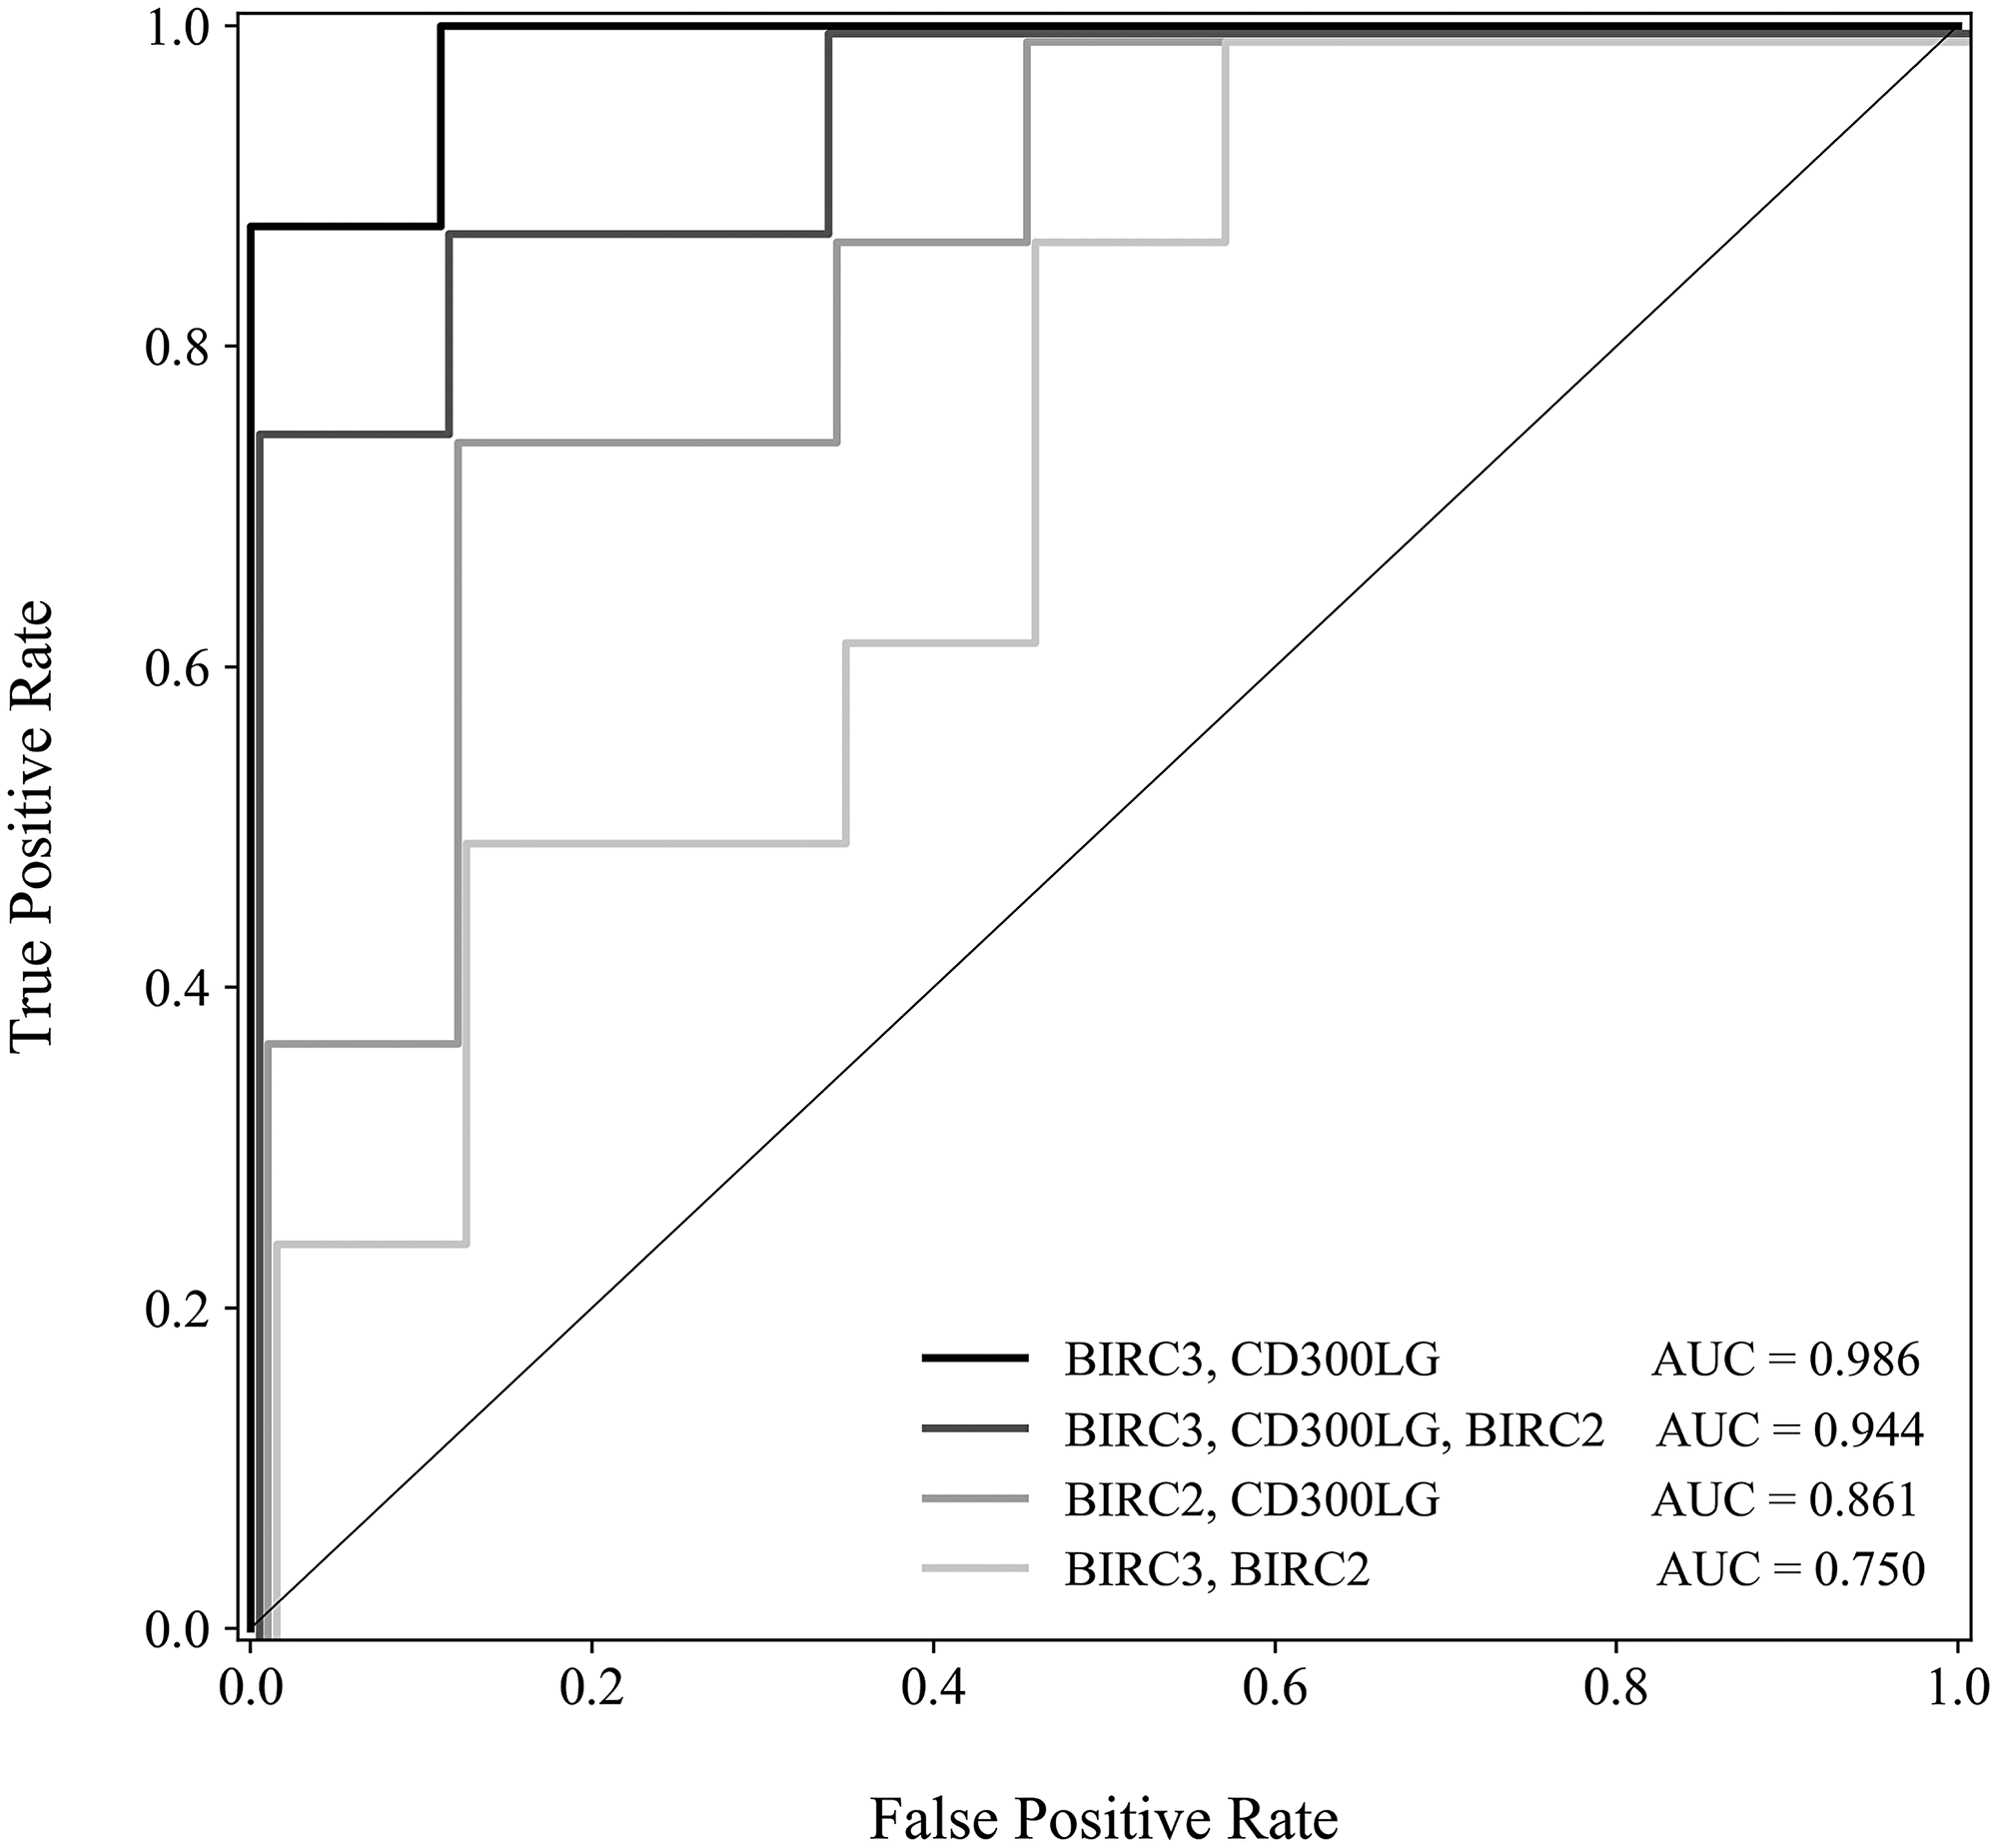 Receiver operating characteristic curve comparing 4 models–models based on each combination of the top 3 genes were evaluated for sensitivity and specificity.